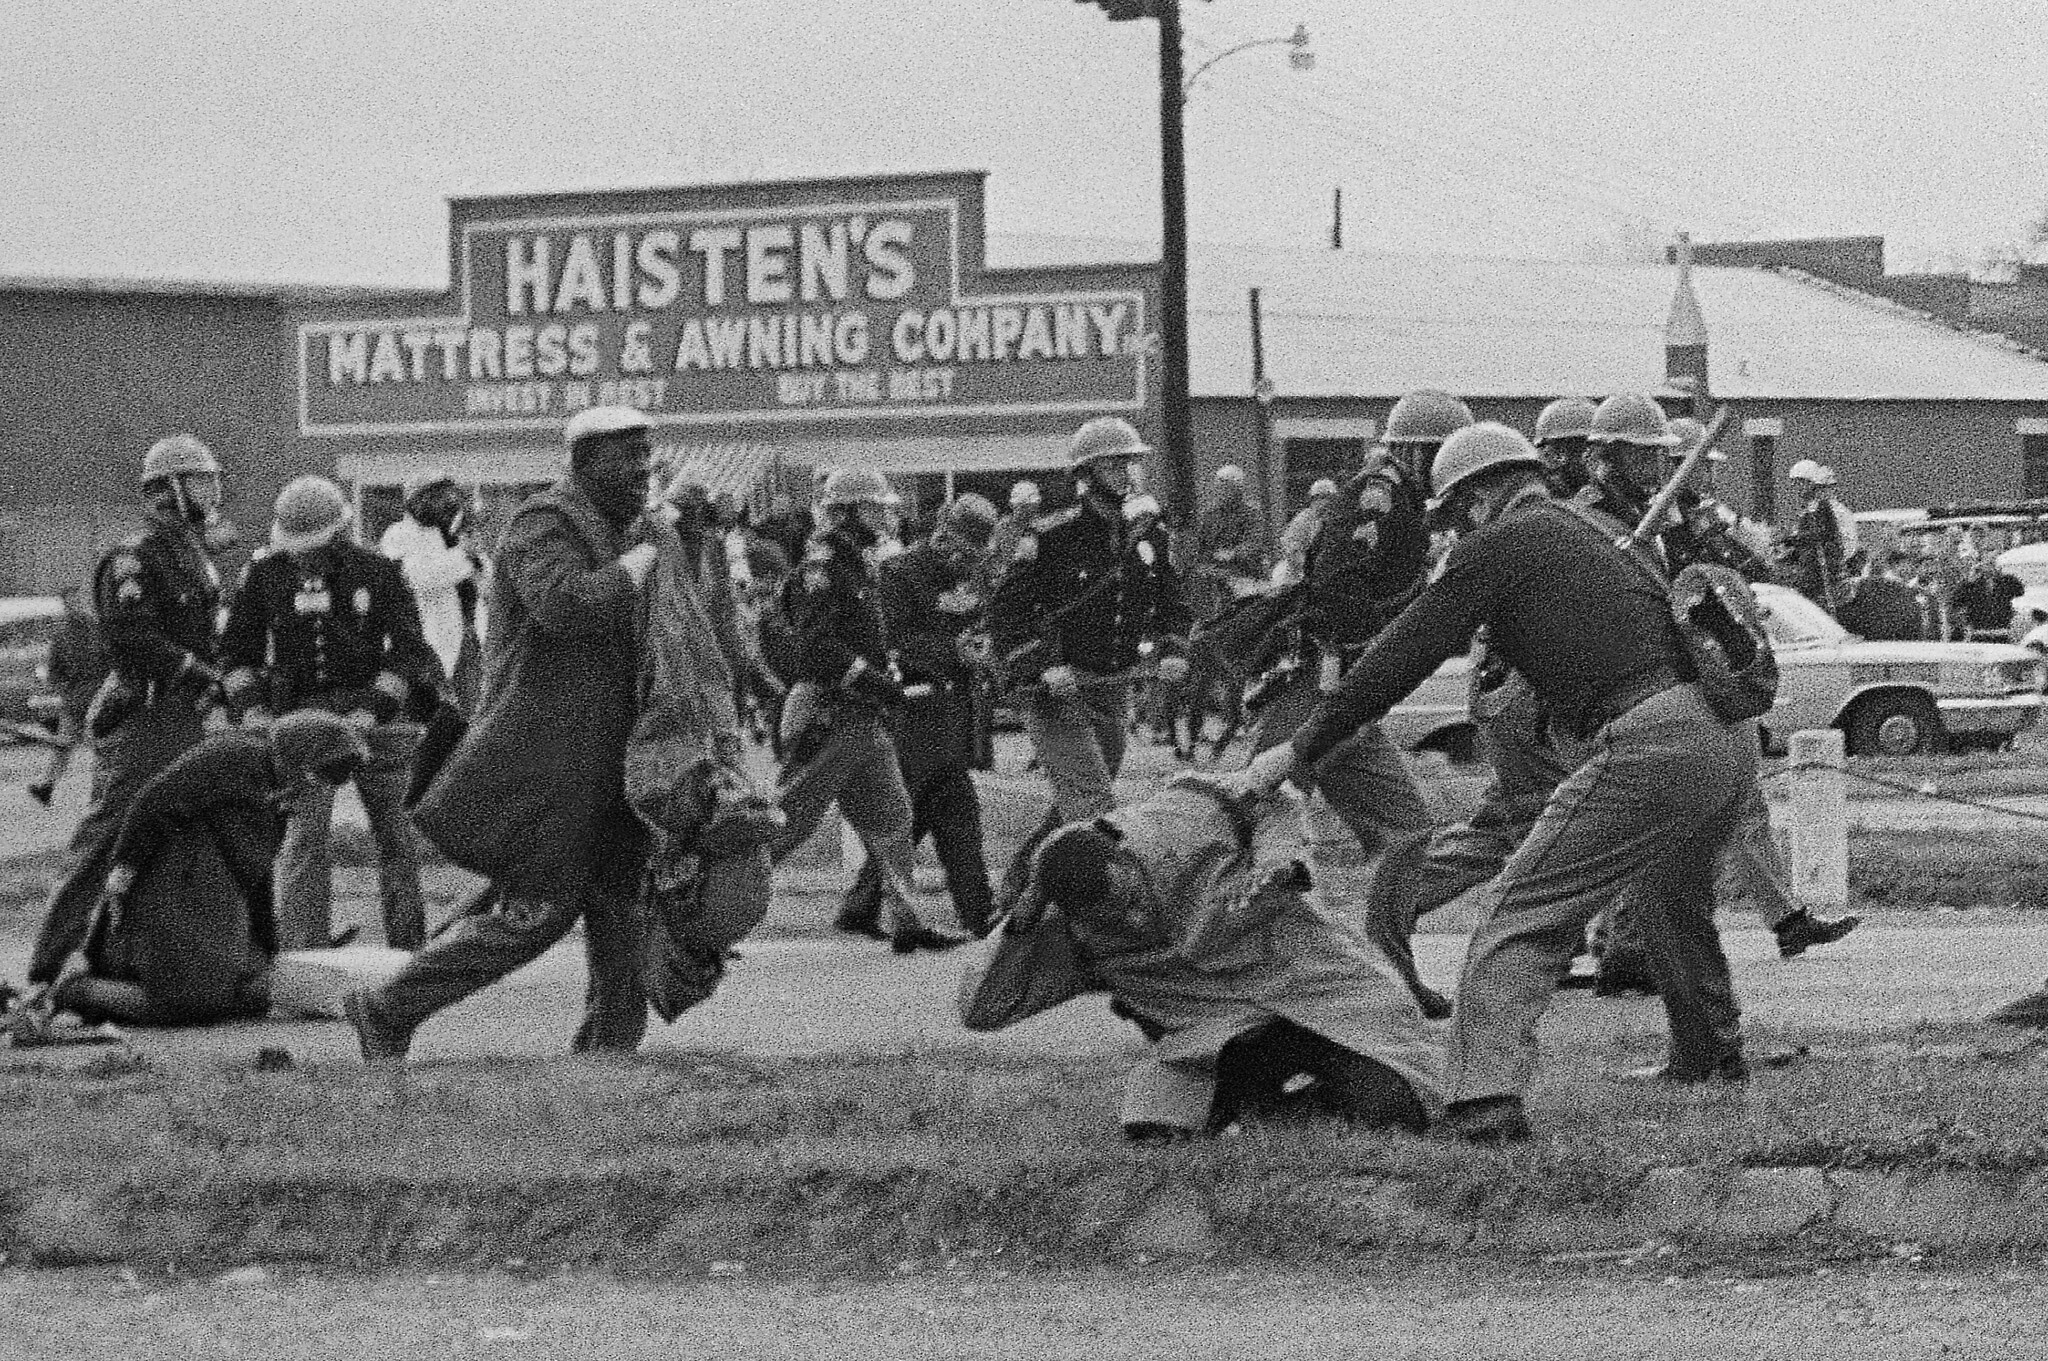 John Lewis, rights icon, 'American hero' and the 'conscience of ...